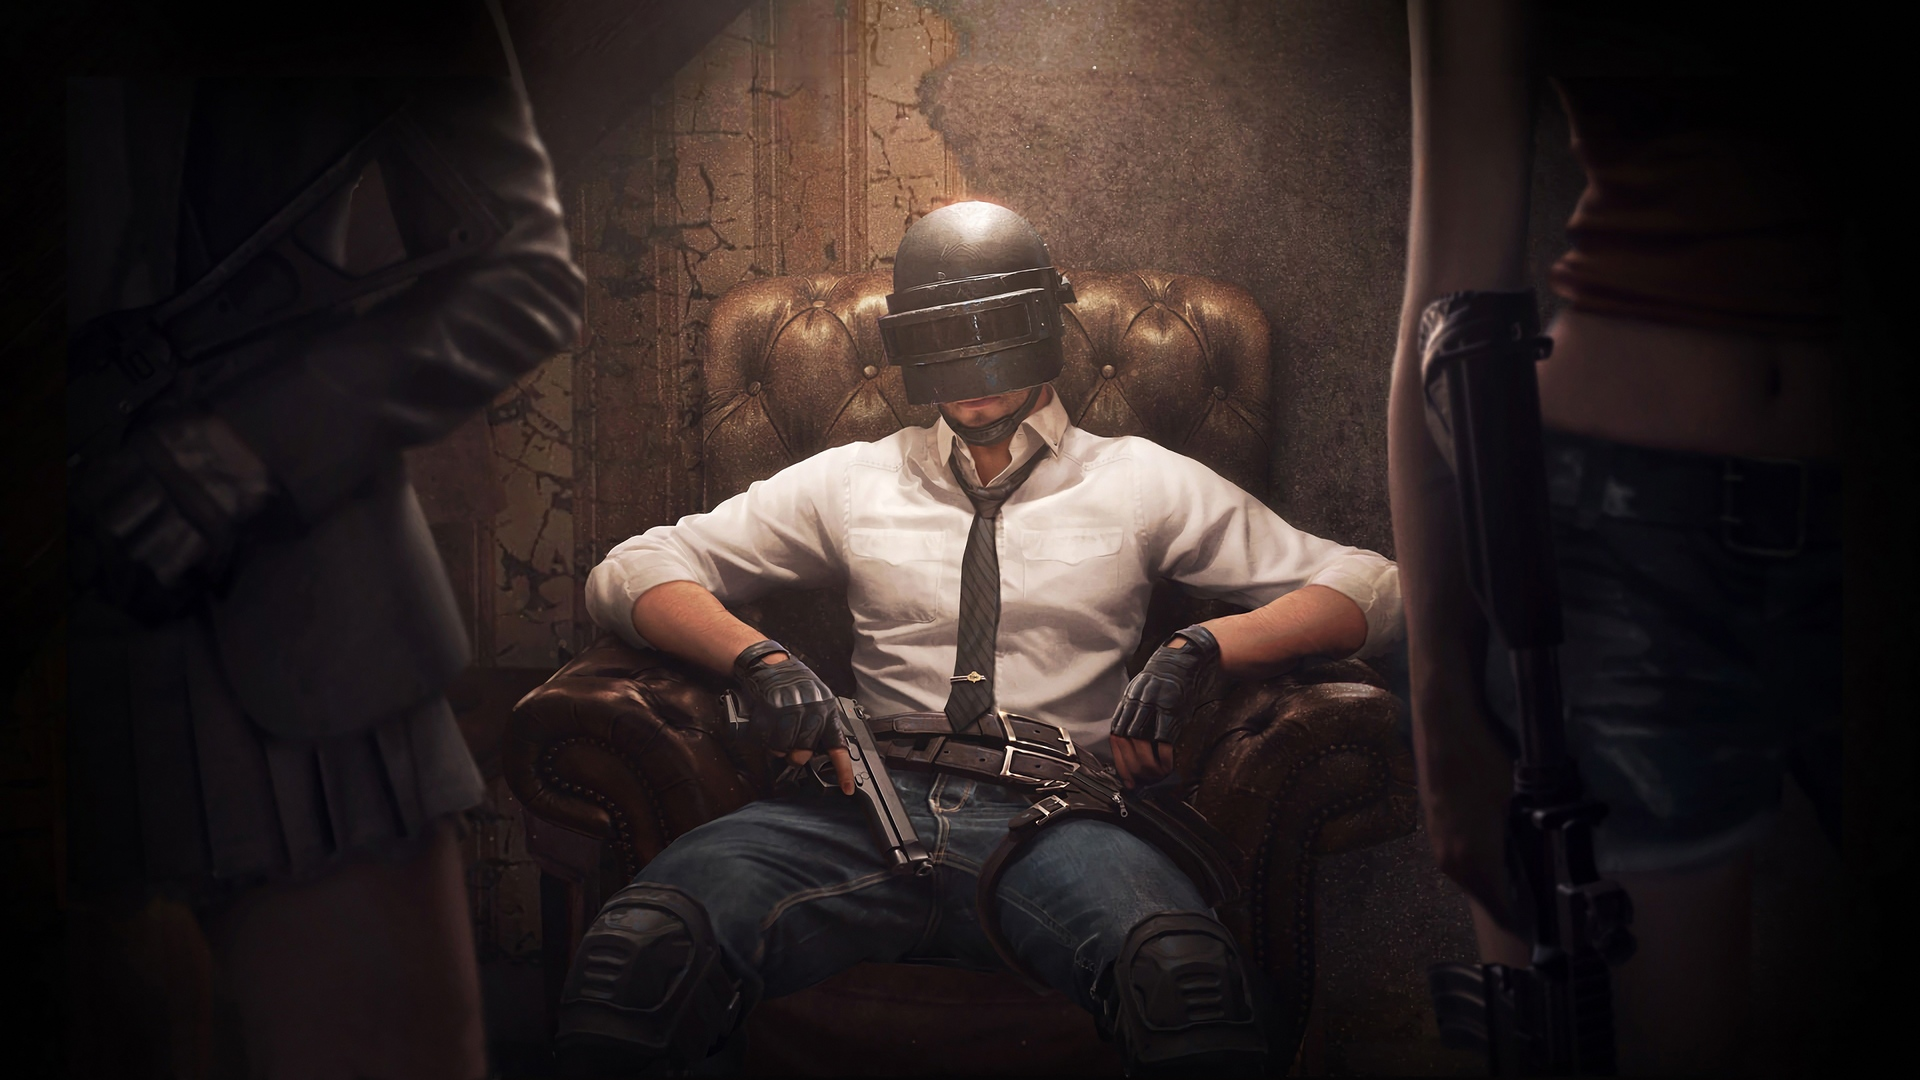 4k Wallpaper Pubg Mobile Wallpaper Hd 1920x1080 4k